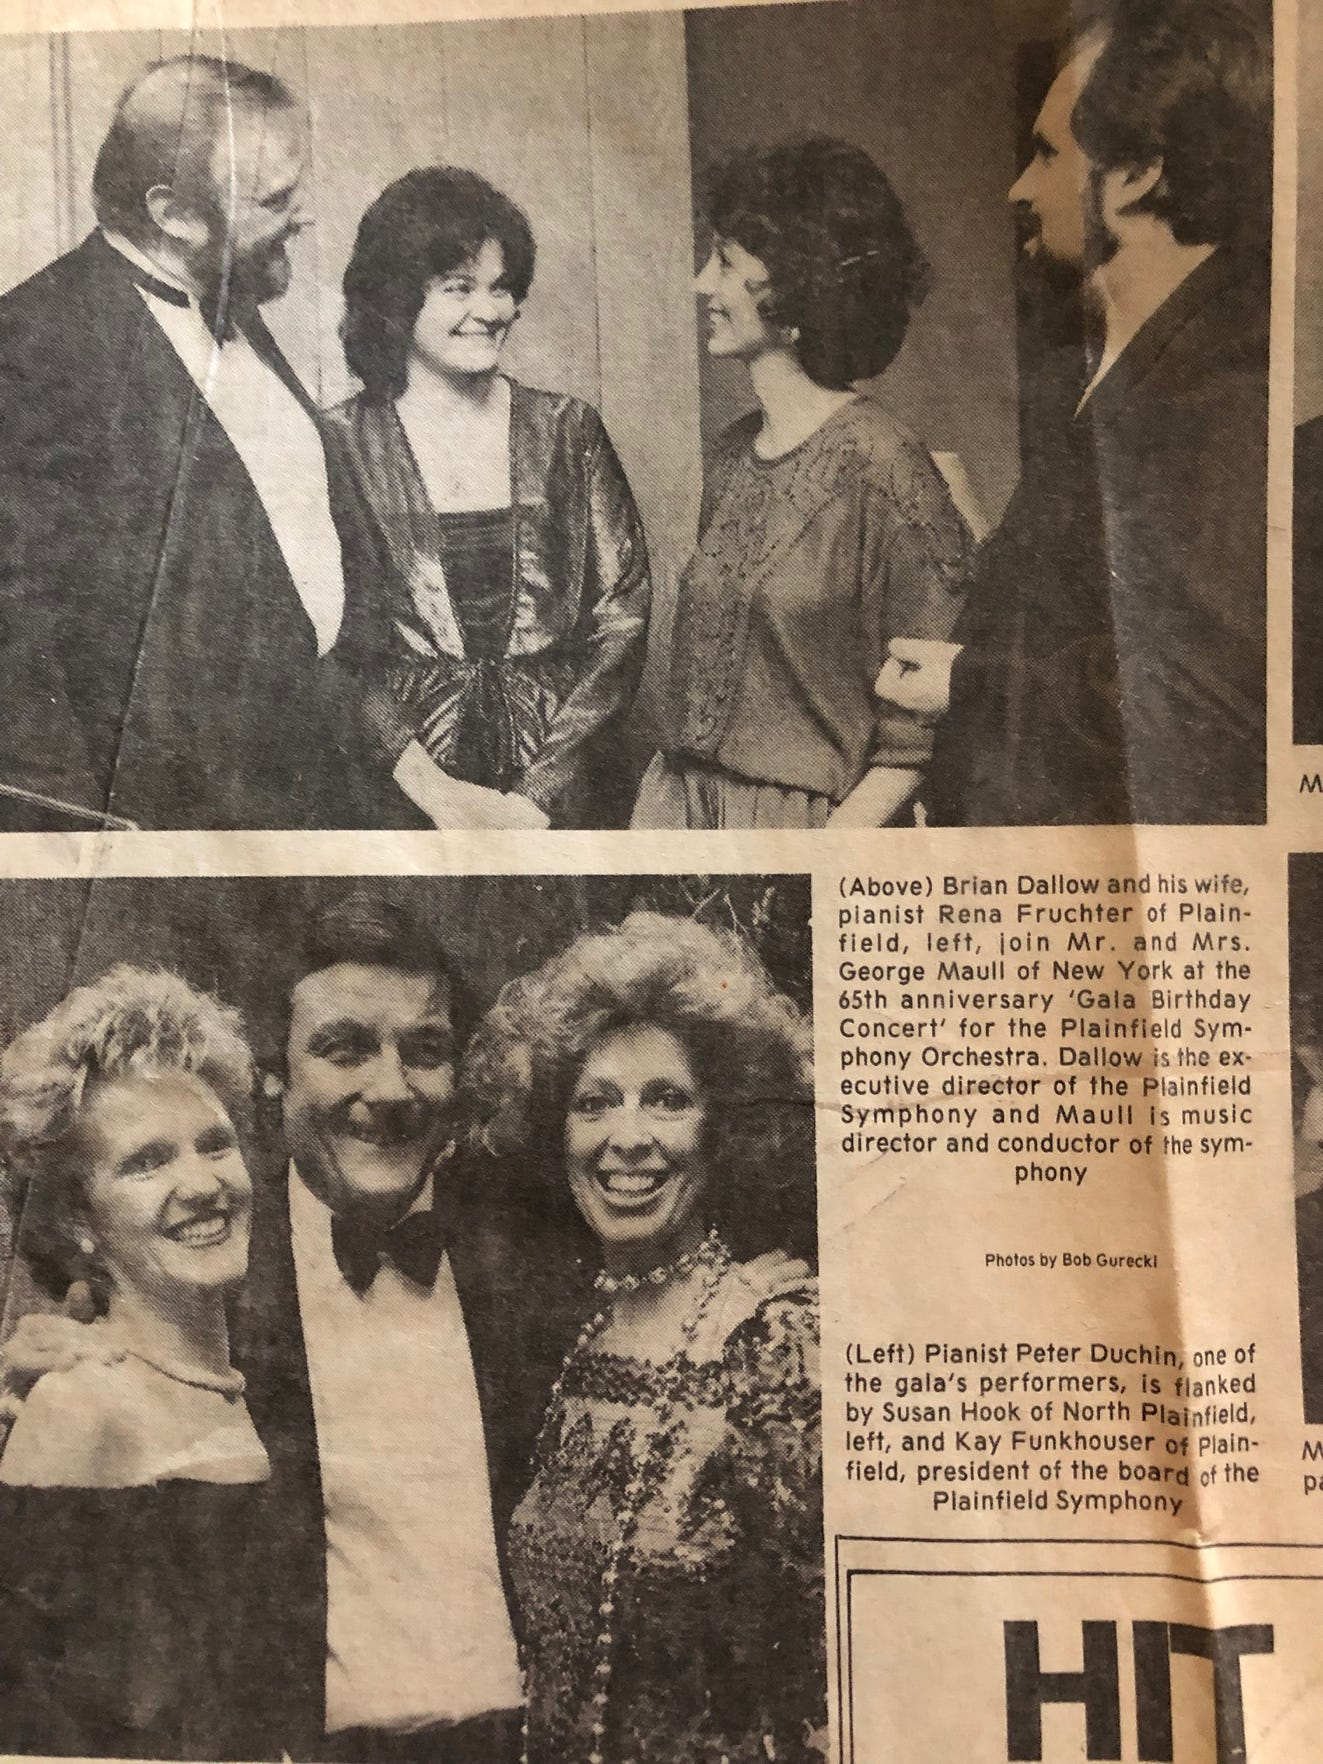 Courier News article about the Plainfield Symphony Orchestra's 65th anniversary celebration in 1984. Pictured at top from left to right are then Executive Director Brian Dallow; his pianist wife Rena Fruchter, who now run the Scotch Plains-based nonprofit Music for All Seasons; Marcia Maull, wife of then conductor George Marriner Maull, who now runs Livingston-based Discovery Orchestra. Pictured at bottom from left to right are Susan Hook of North Plainfield, pianist Peter Duchin, who performed at the 65th anniversary gala and will perform Sept. 21 at the 100th anniversary gala, and then Board President Kay Funkhouser.